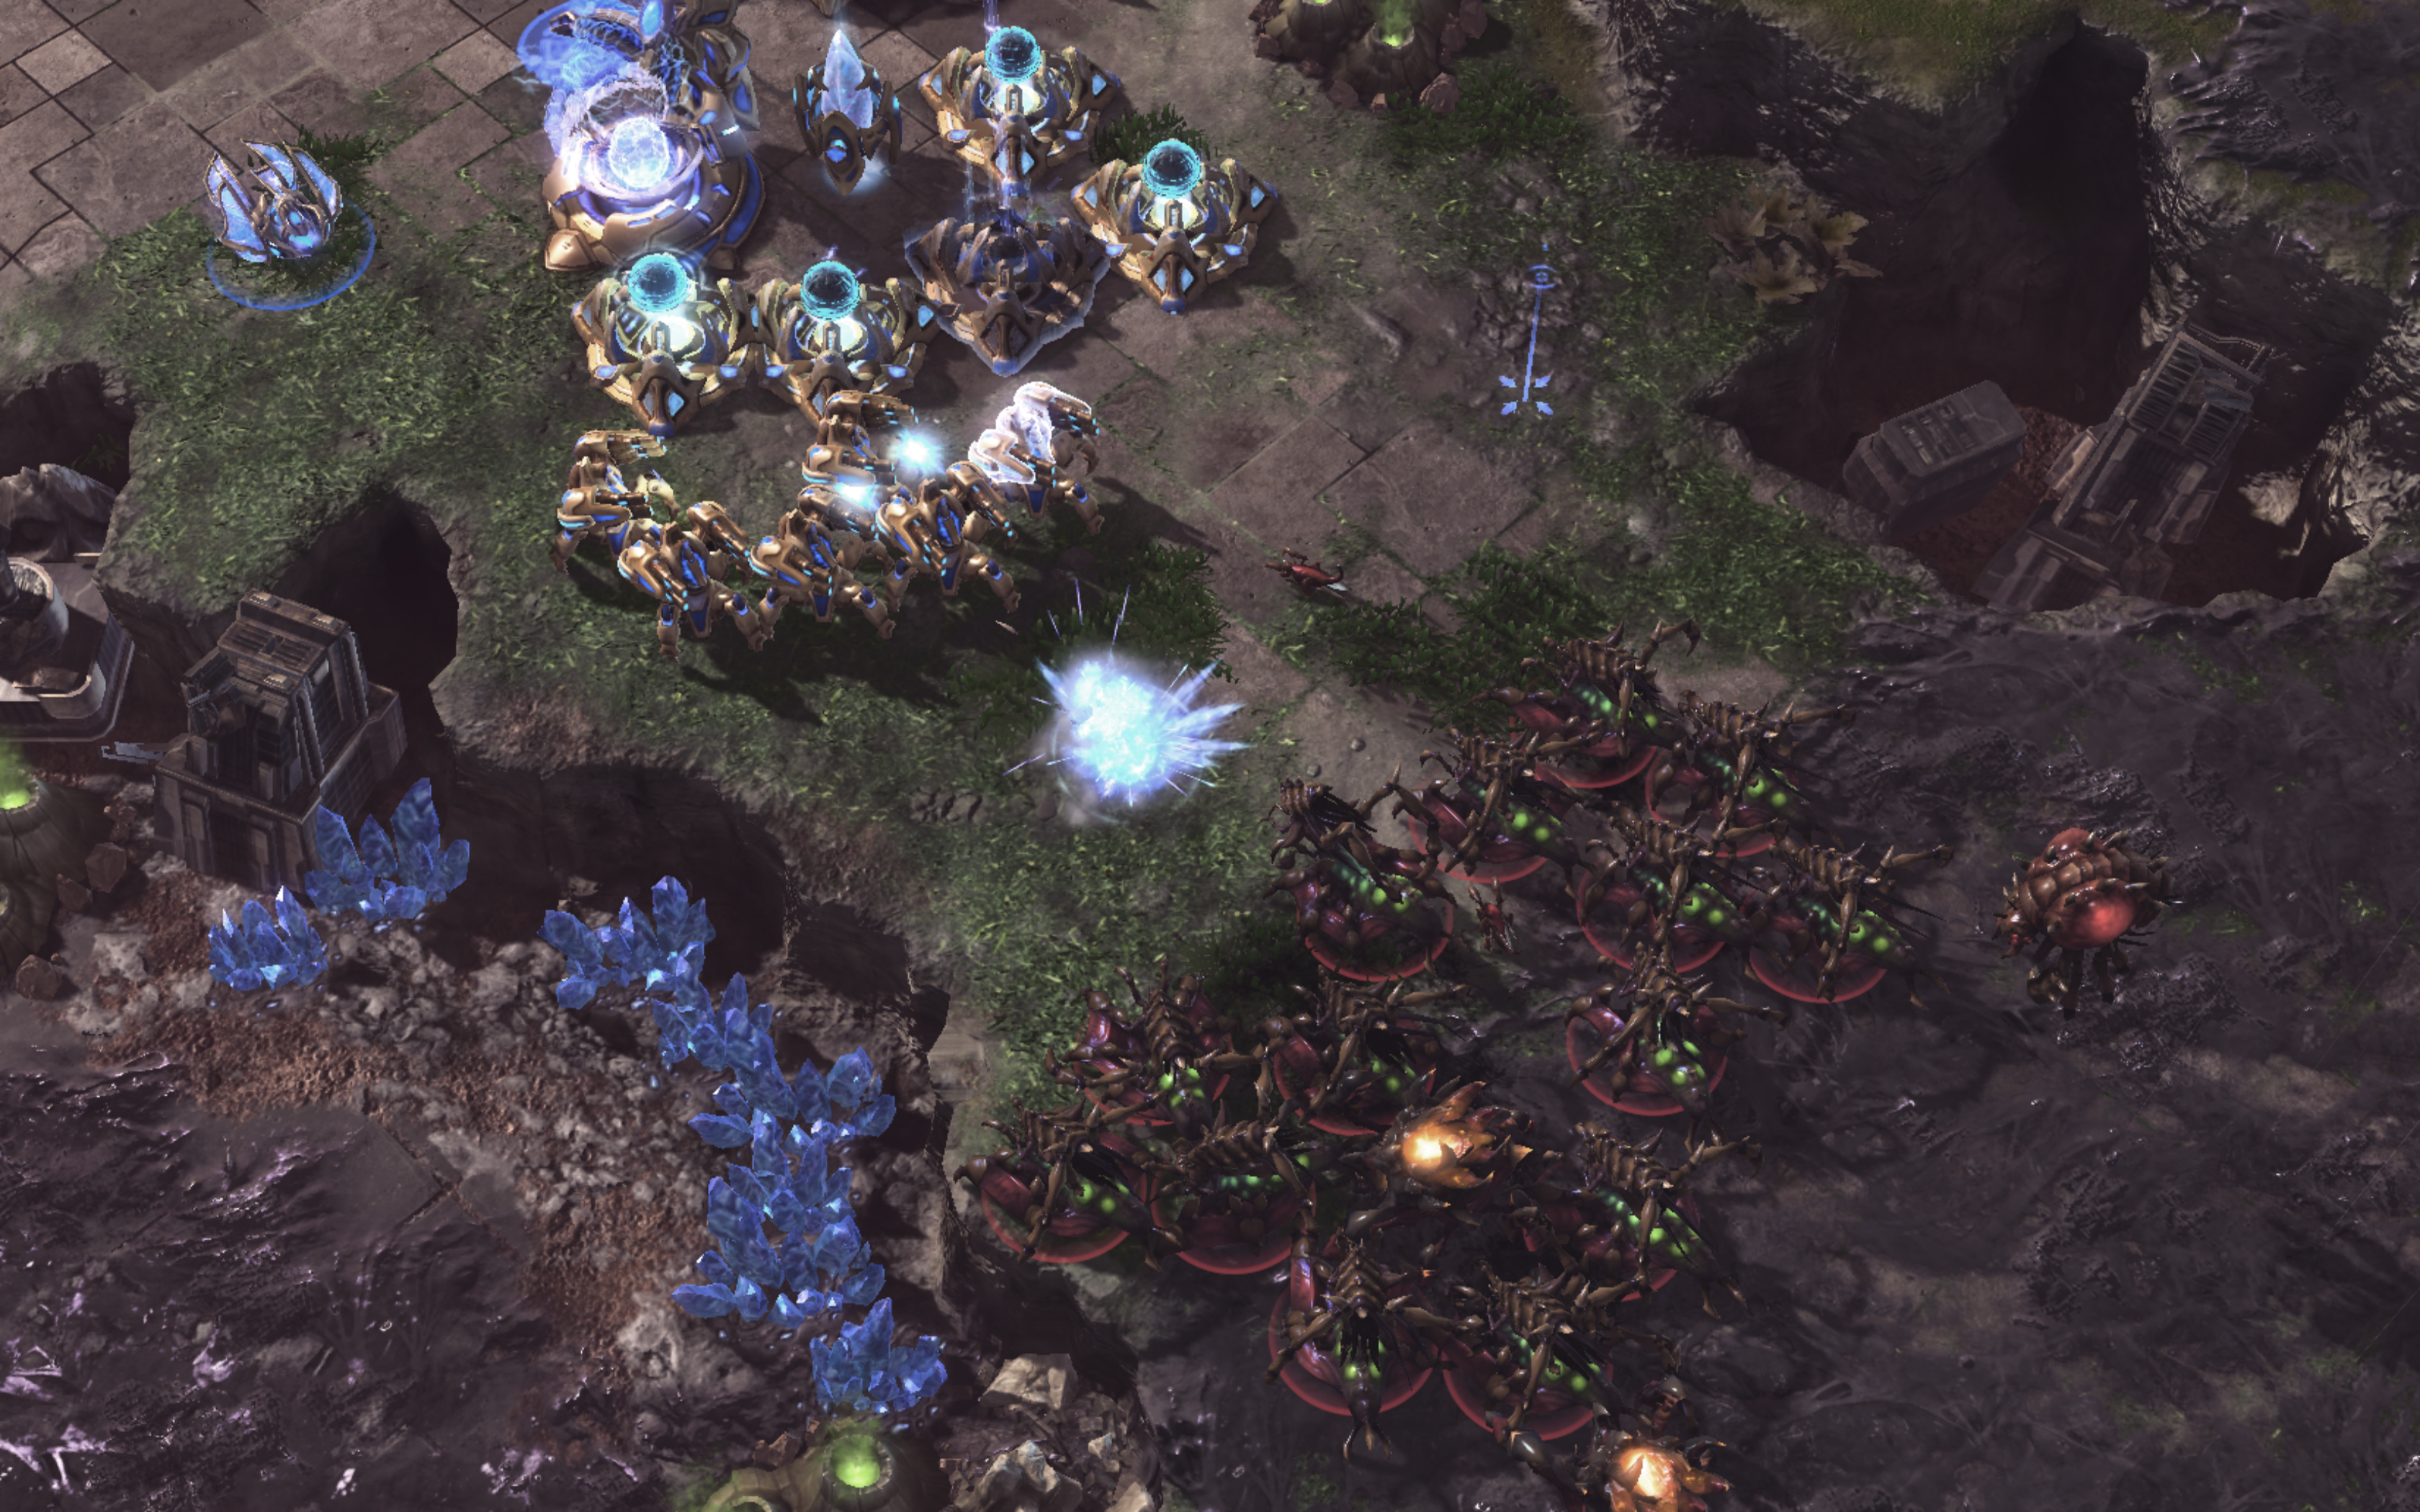 AlphaStar (Zerg, in red) defending an early aggression where the opponent built part of the base near AlphaStar's base.